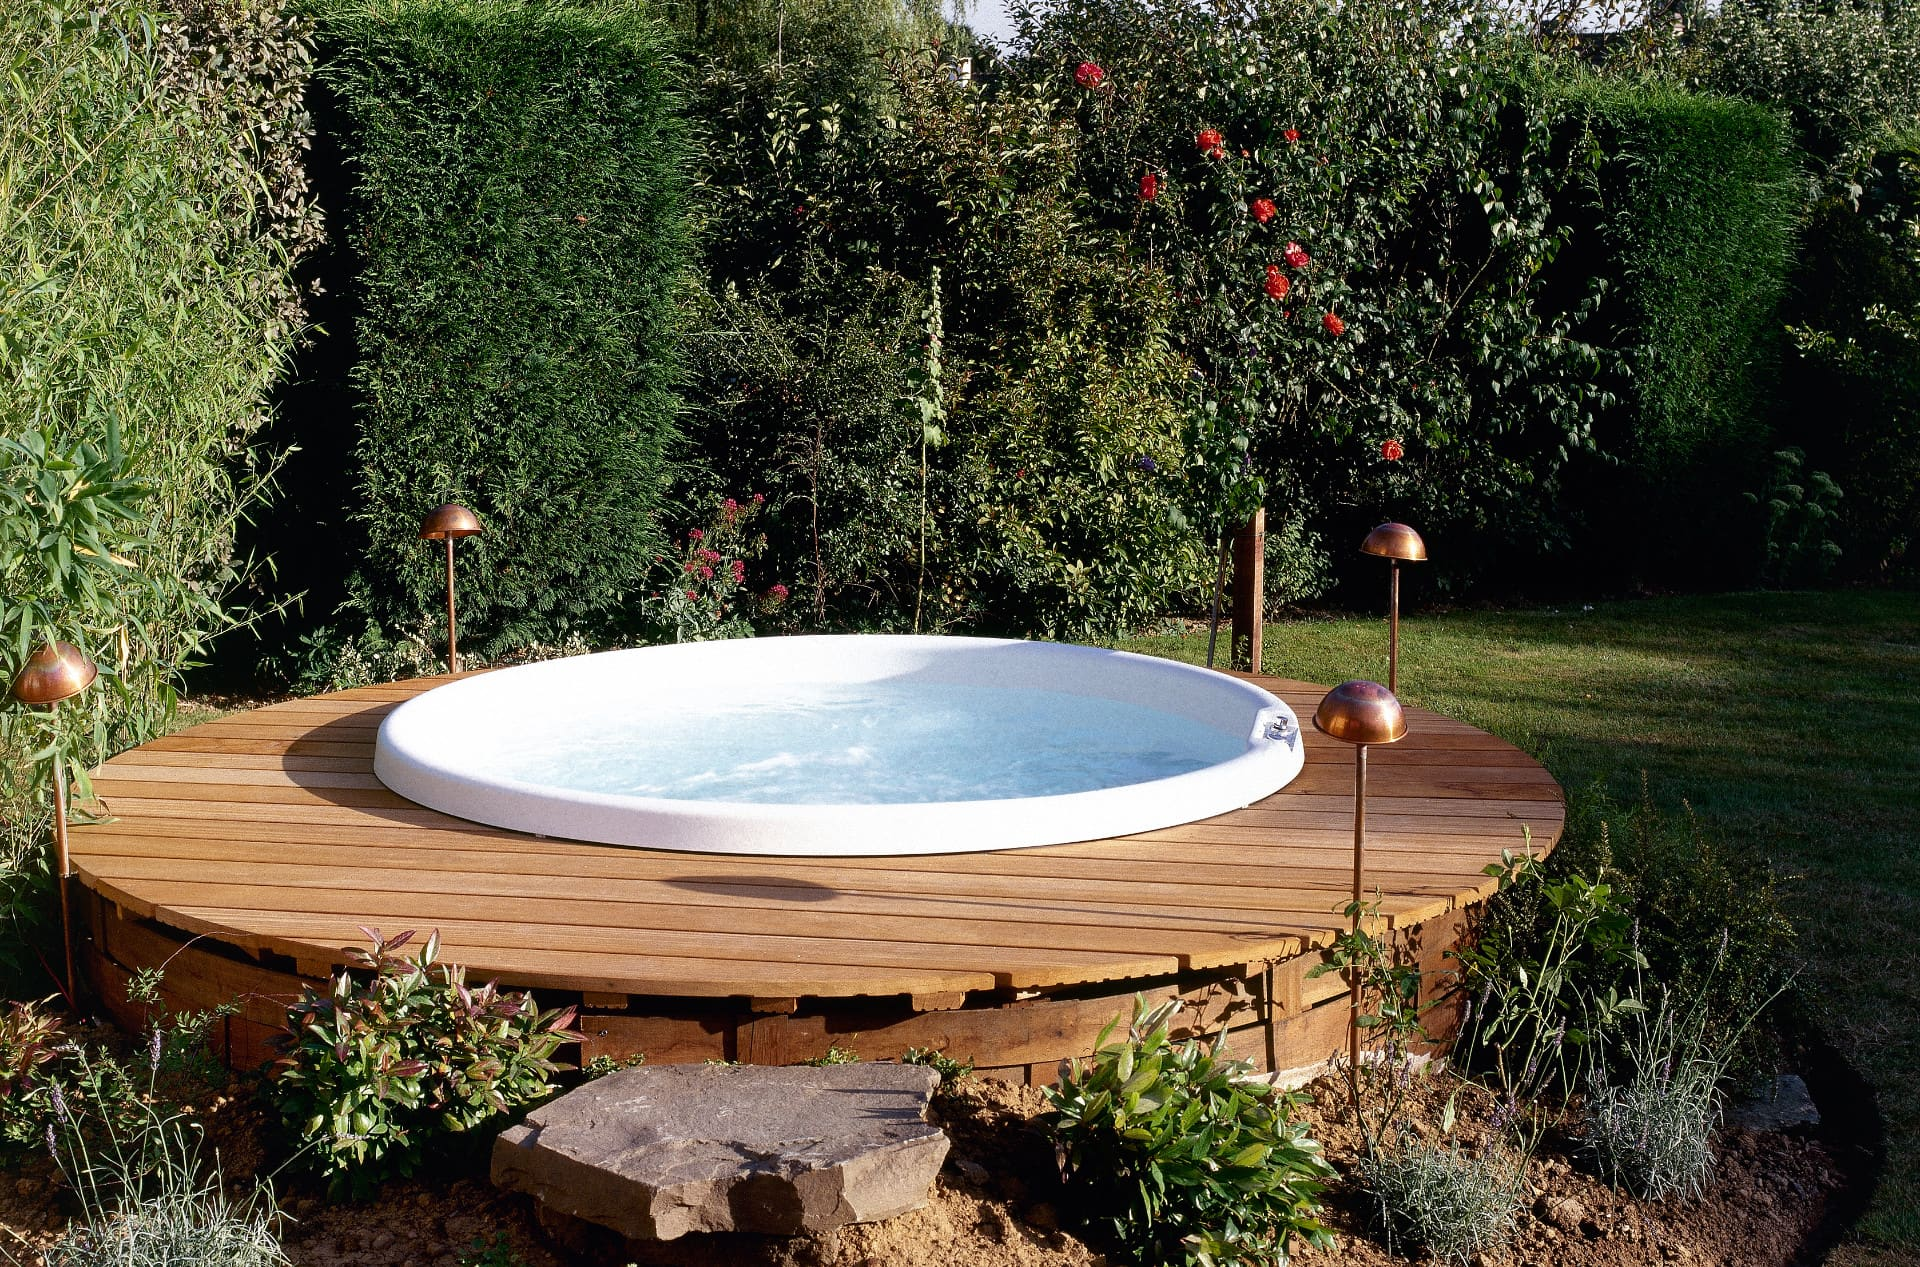 Getting Your Garden Jacuzzi Ready